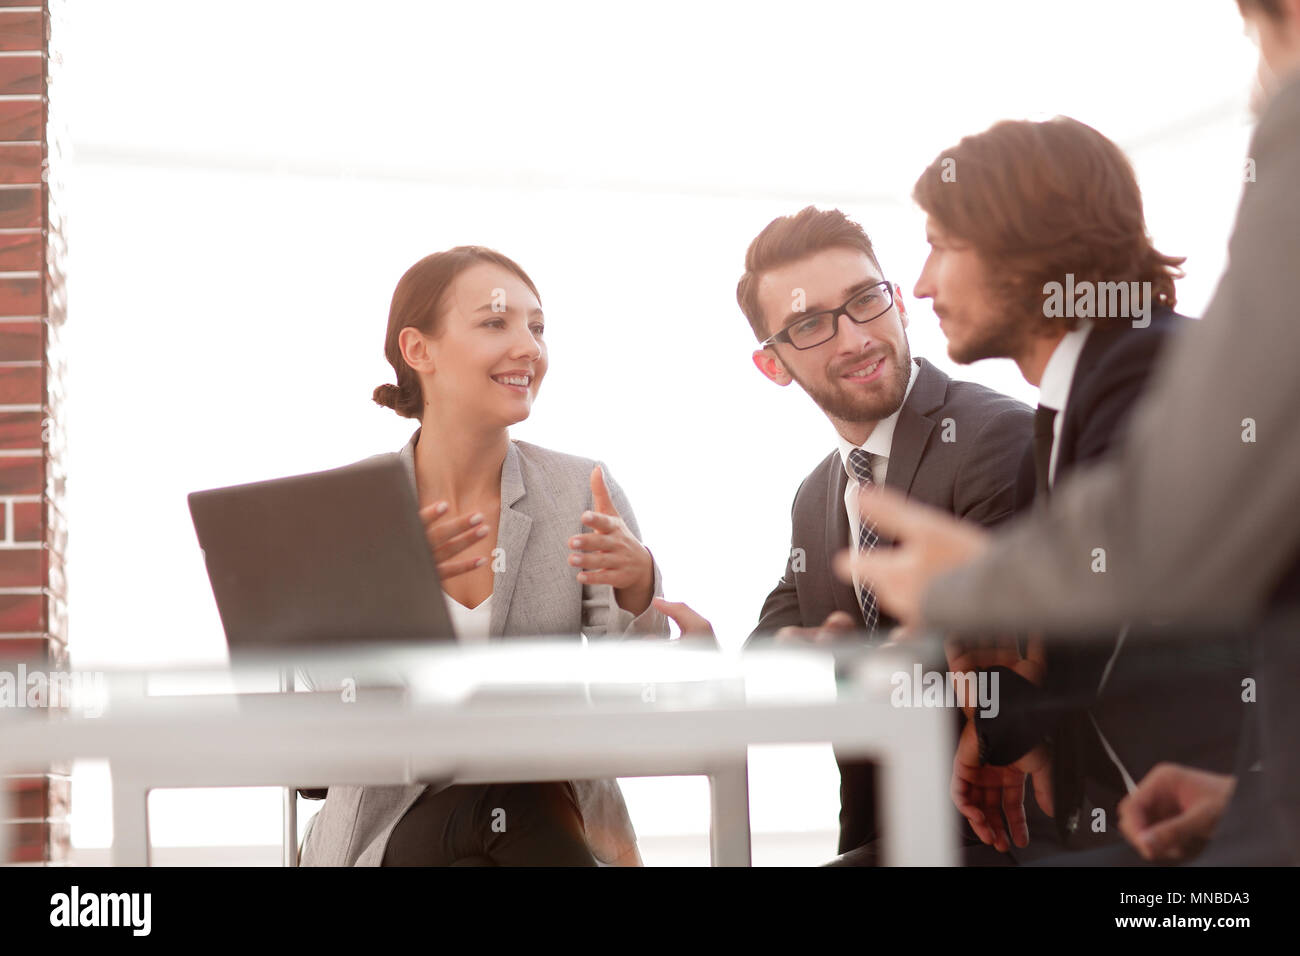 corporate meetings business group - Stock Image